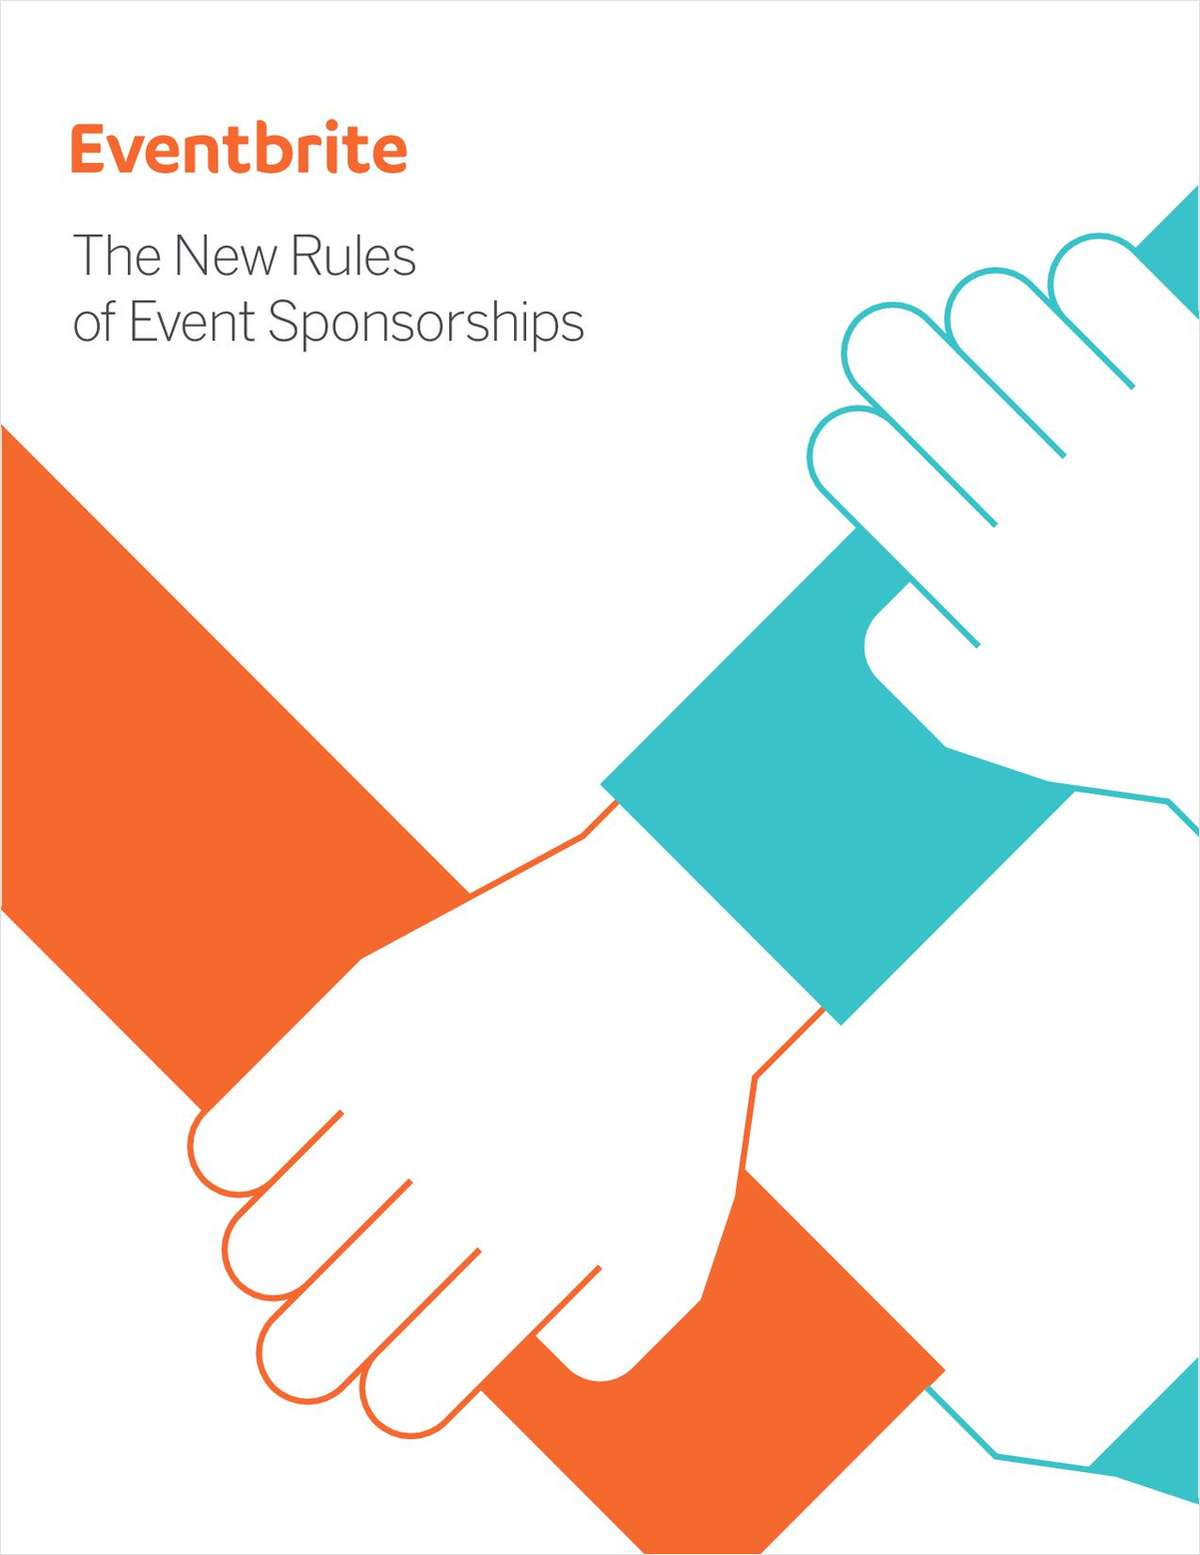 The New Rules of Event Sponsorships